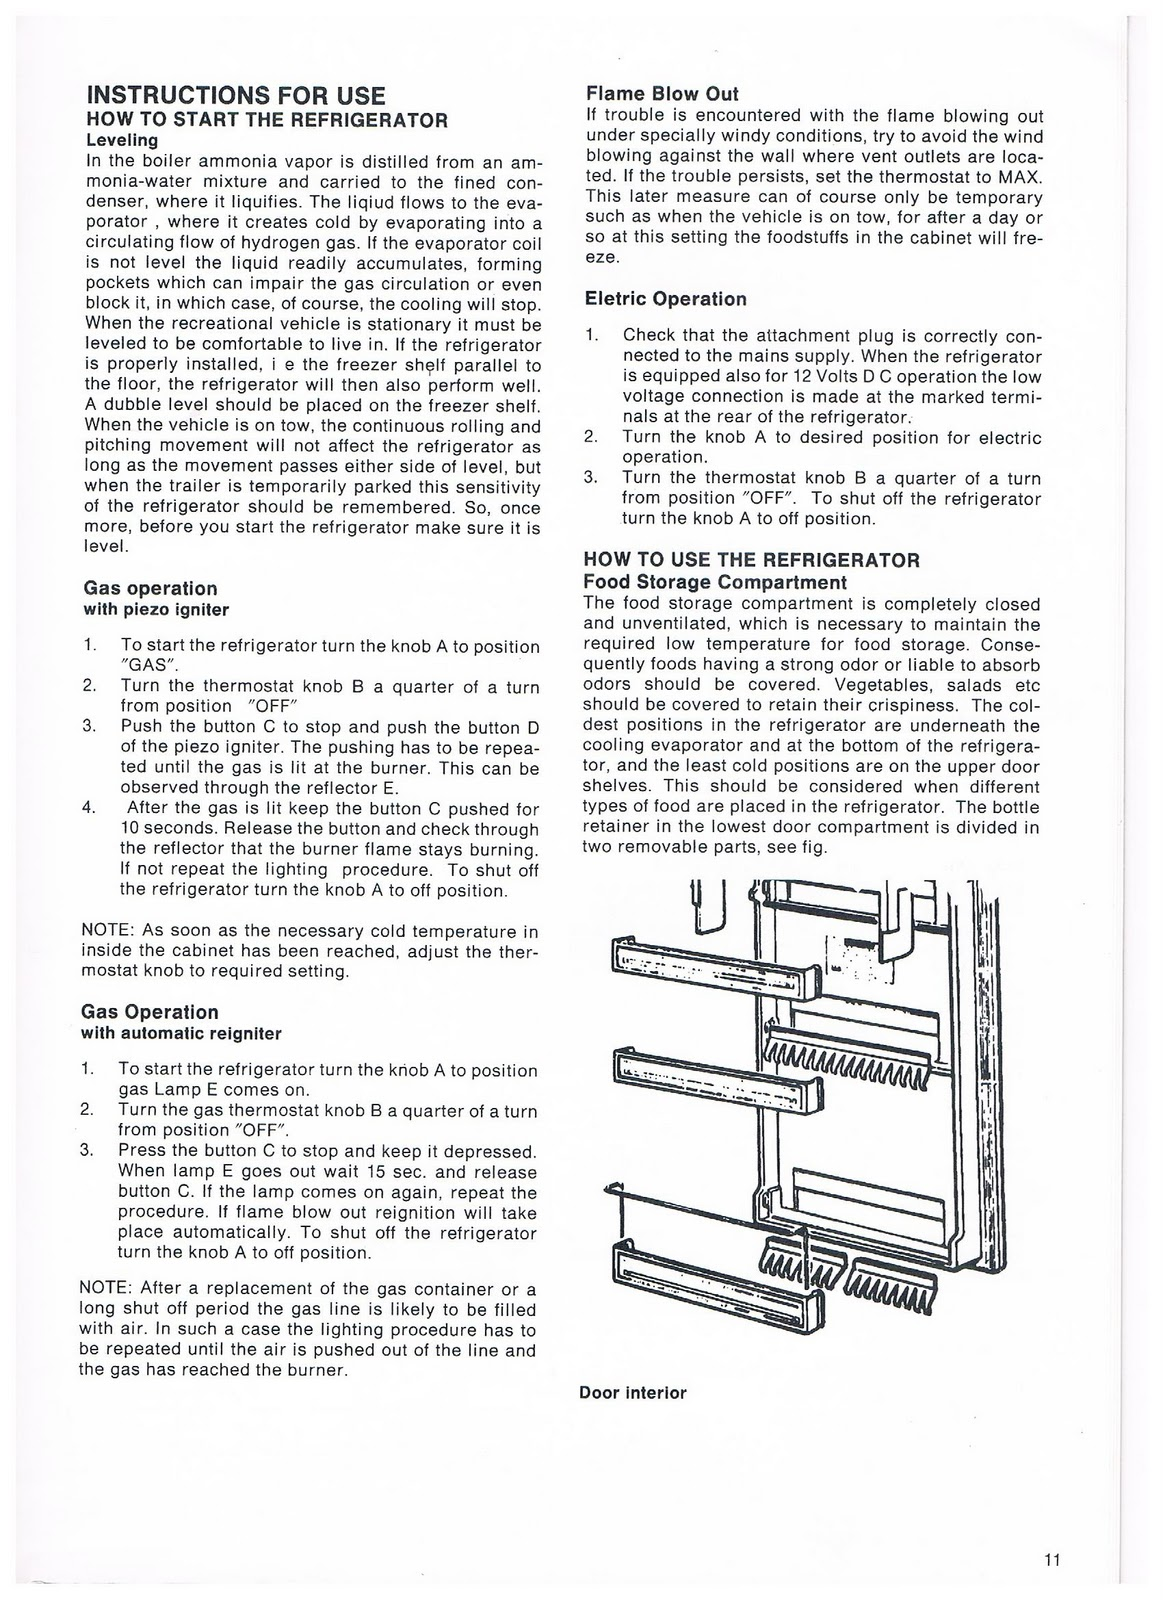 Dometic Refrigerator Rm2652 Owners Manual Wiring Schematic Instructions For